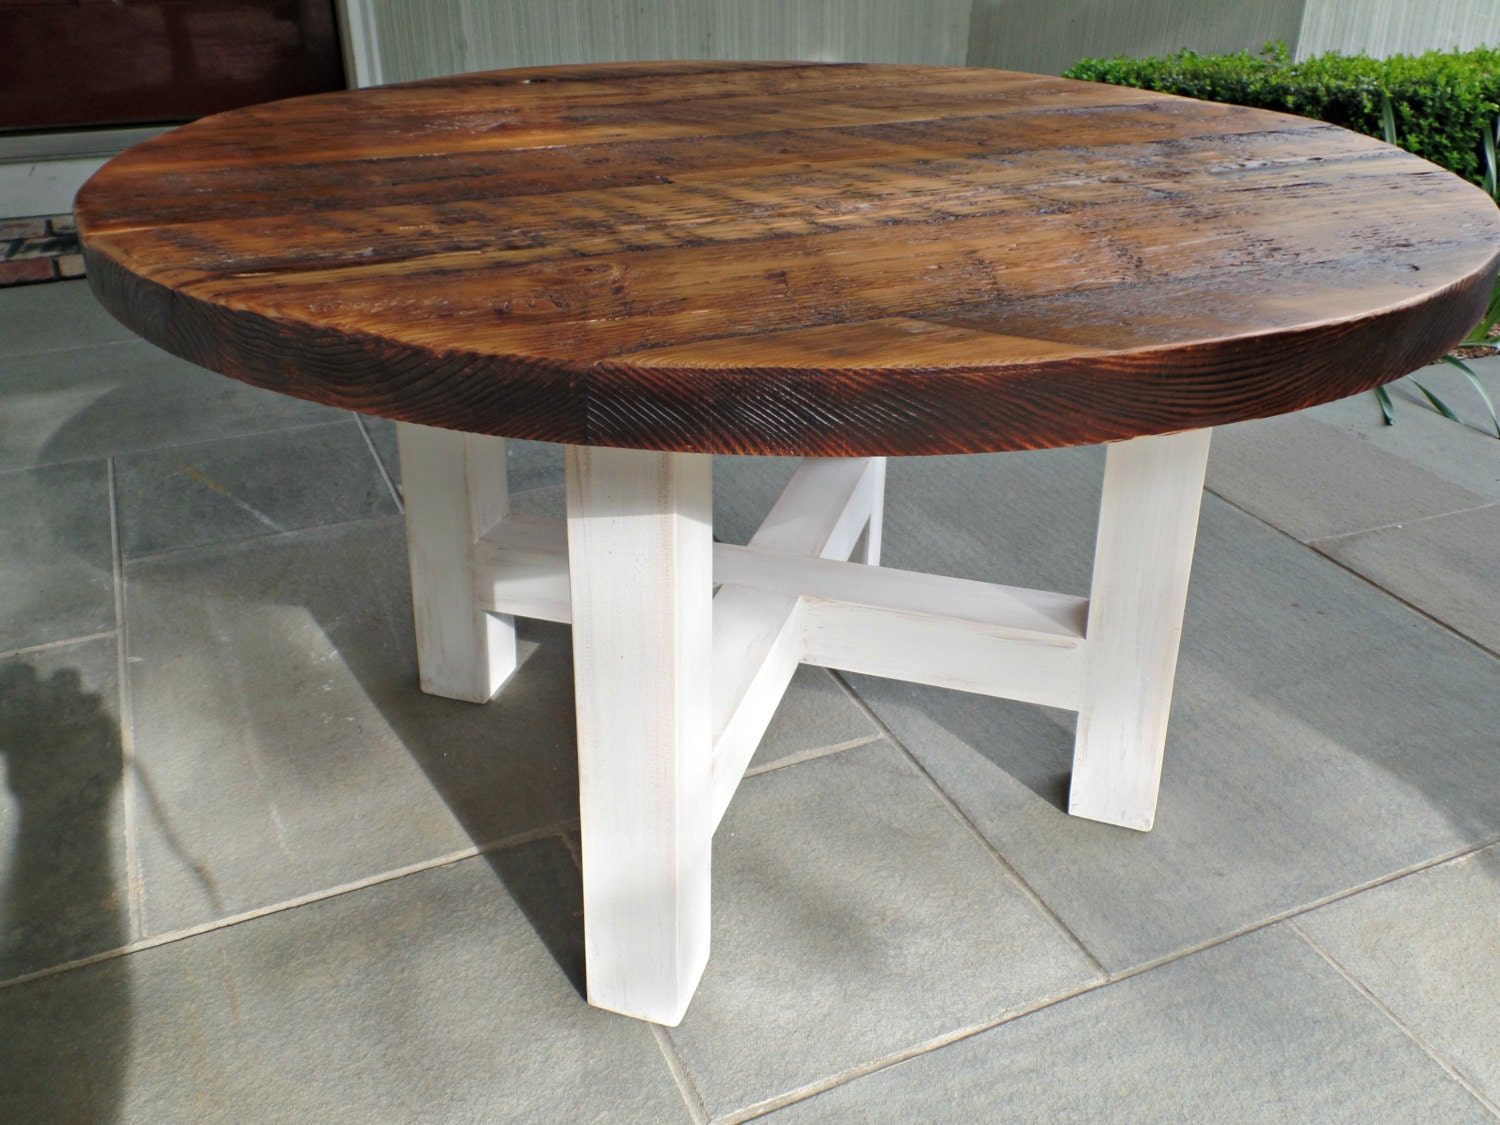 round reclaimed wood coffee table by swdesigns74 on etsy. Black Bedroom Furniture Sets. Home Design Ideas